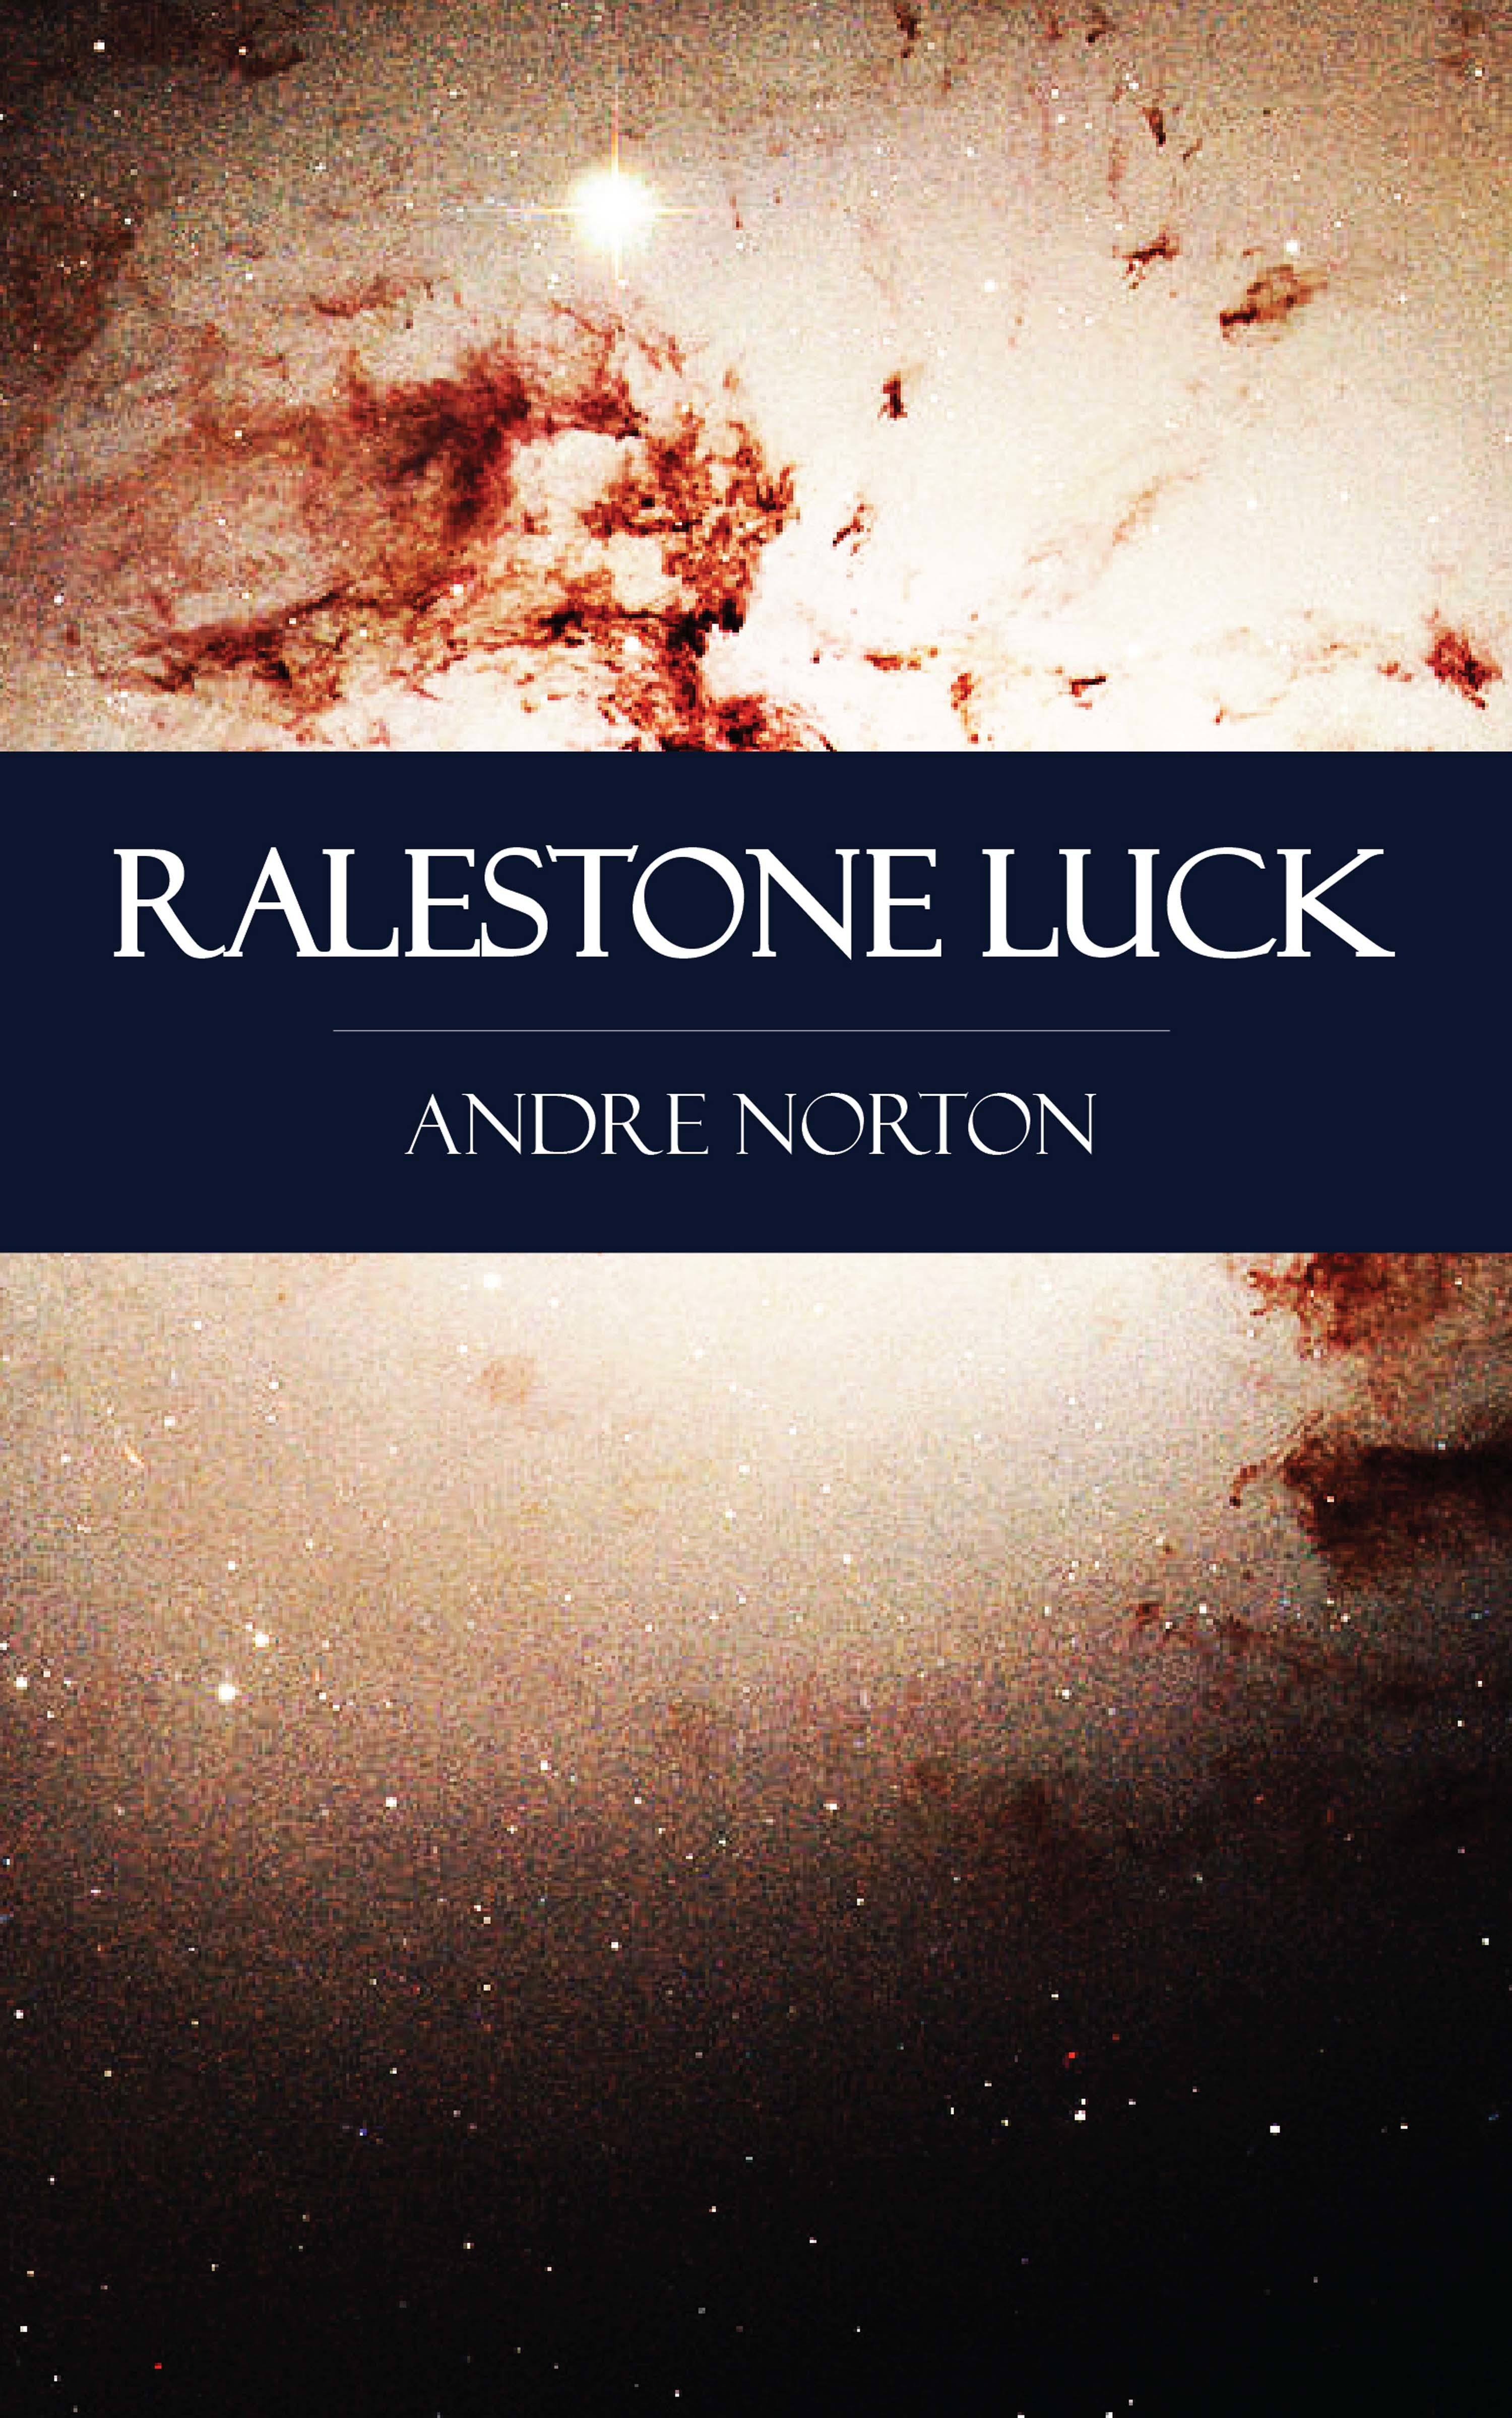 Andre Norton Ralestone Luck andre norton ride proud rebel by andre norton science fiction western historical